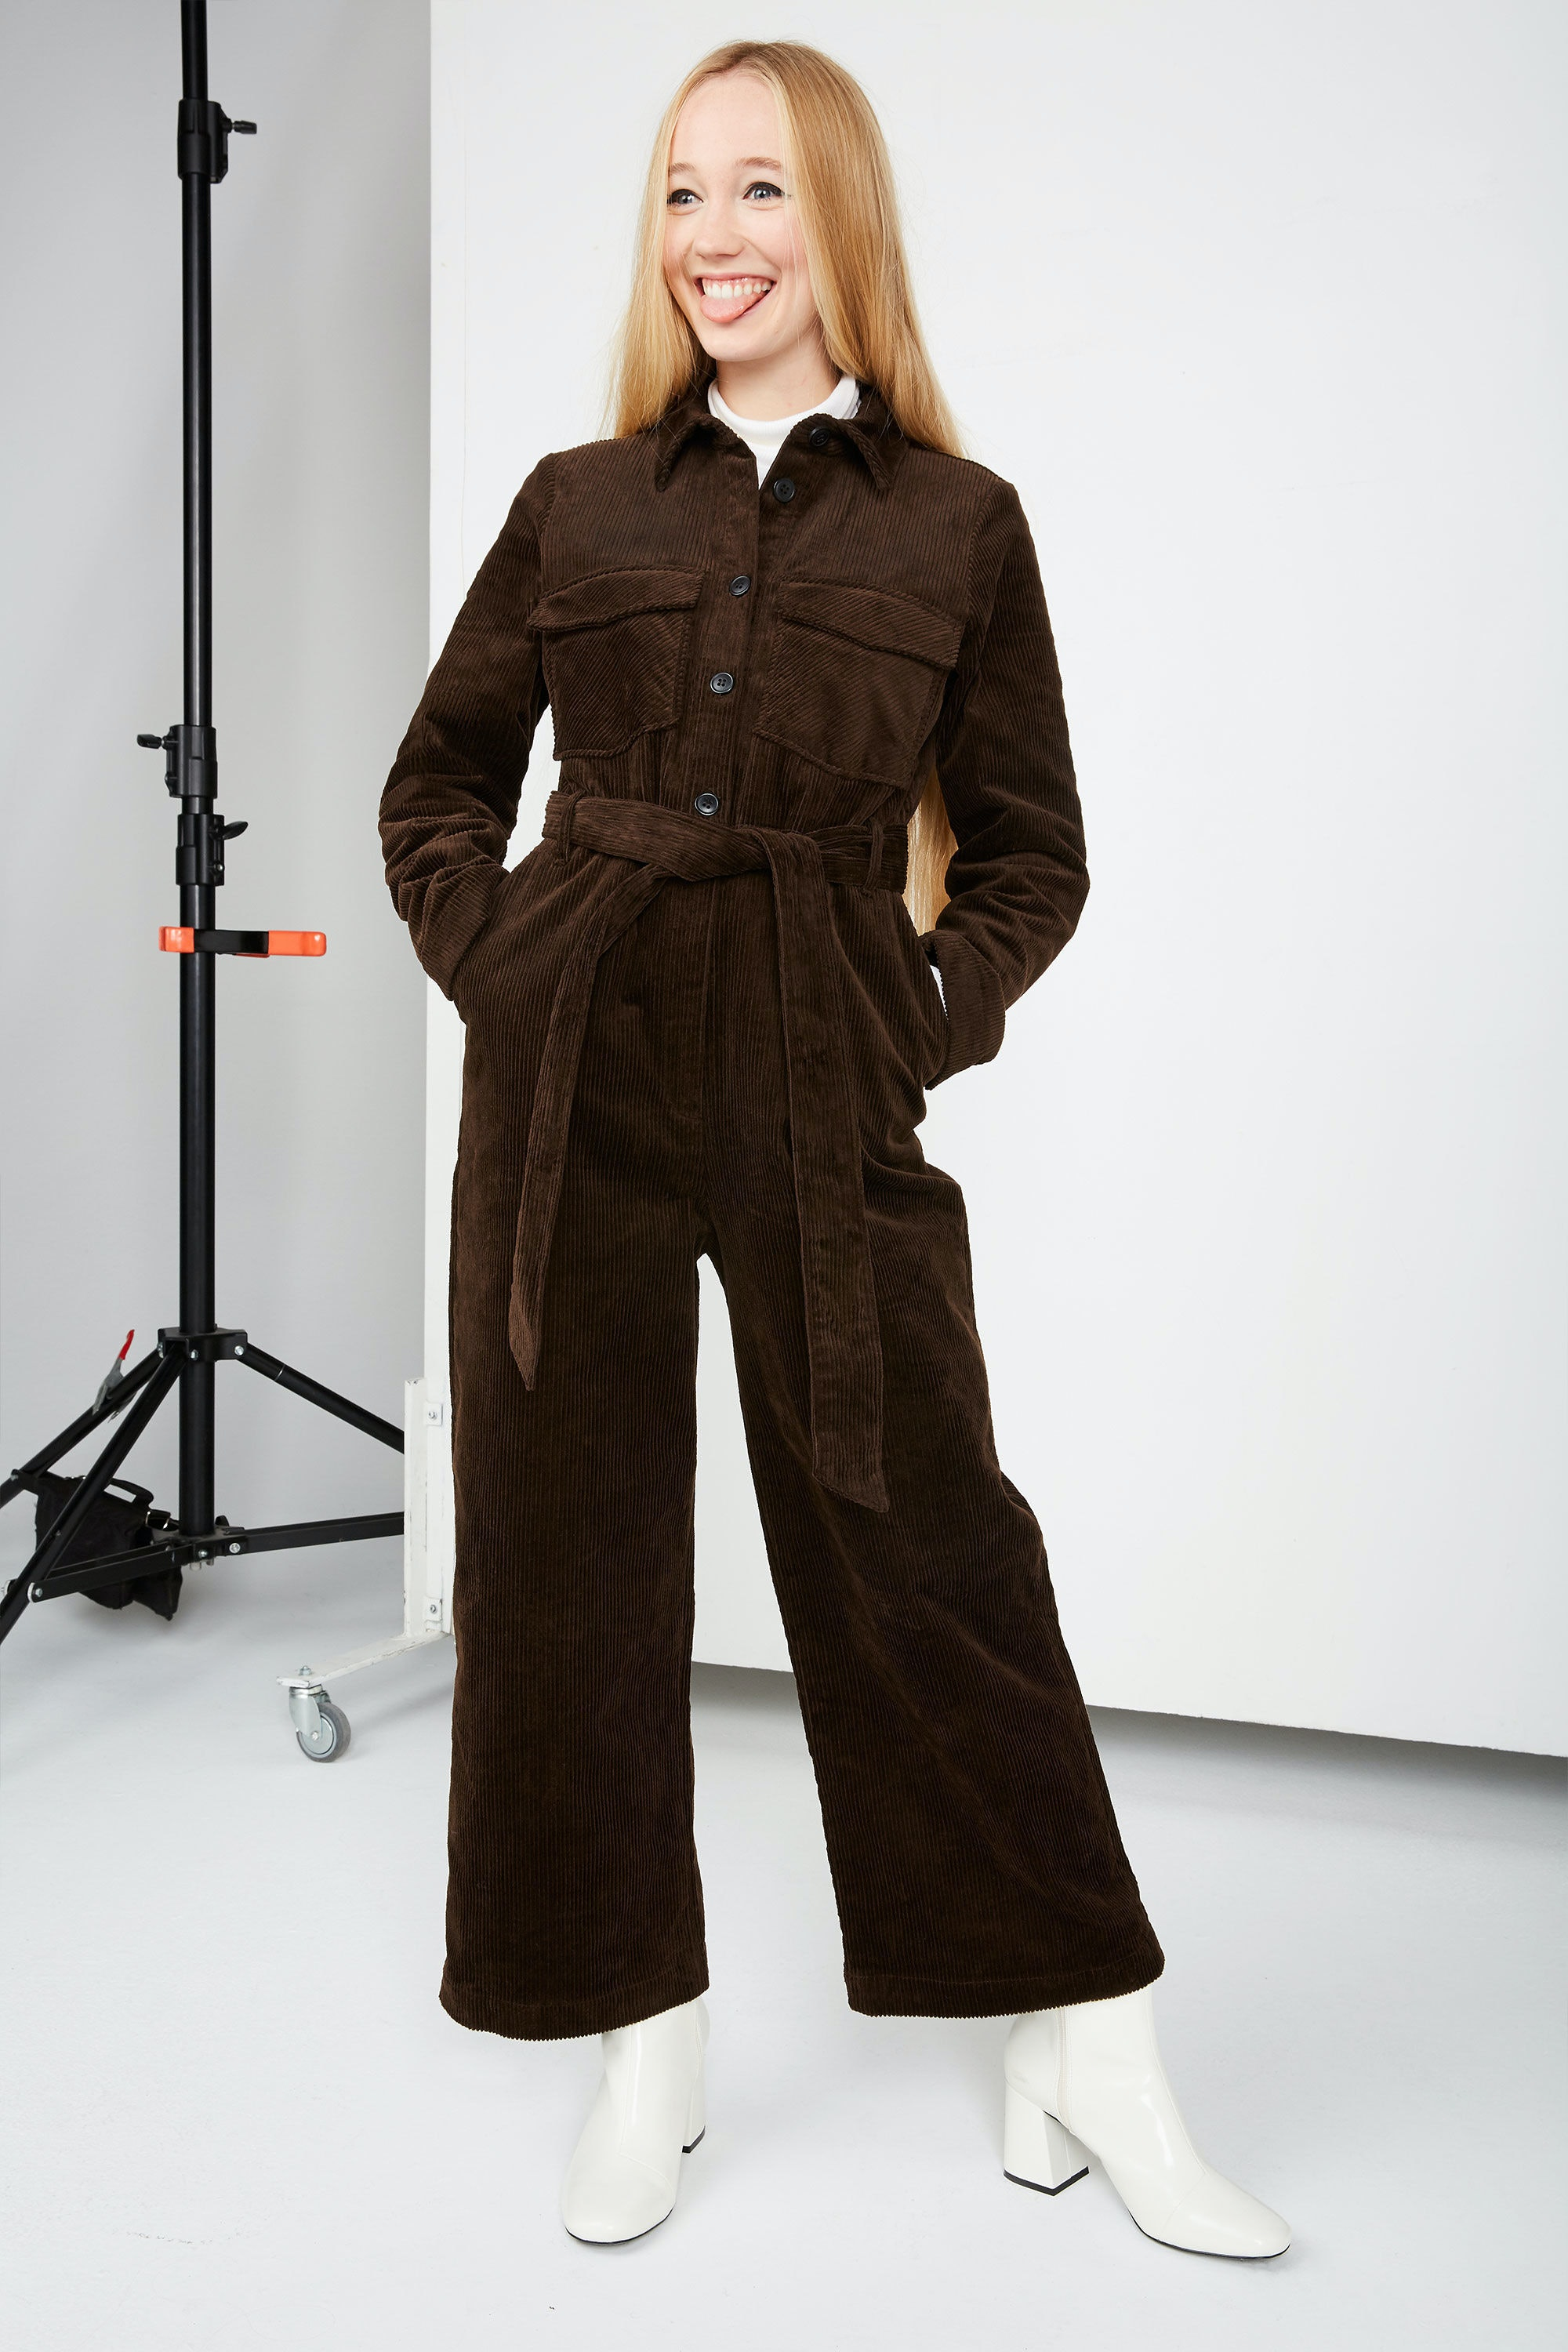 d786e13a369 The Utility Jumpsuit Winter 2018 Trend Is Here   I ve Found One For Every  Day Of The Week